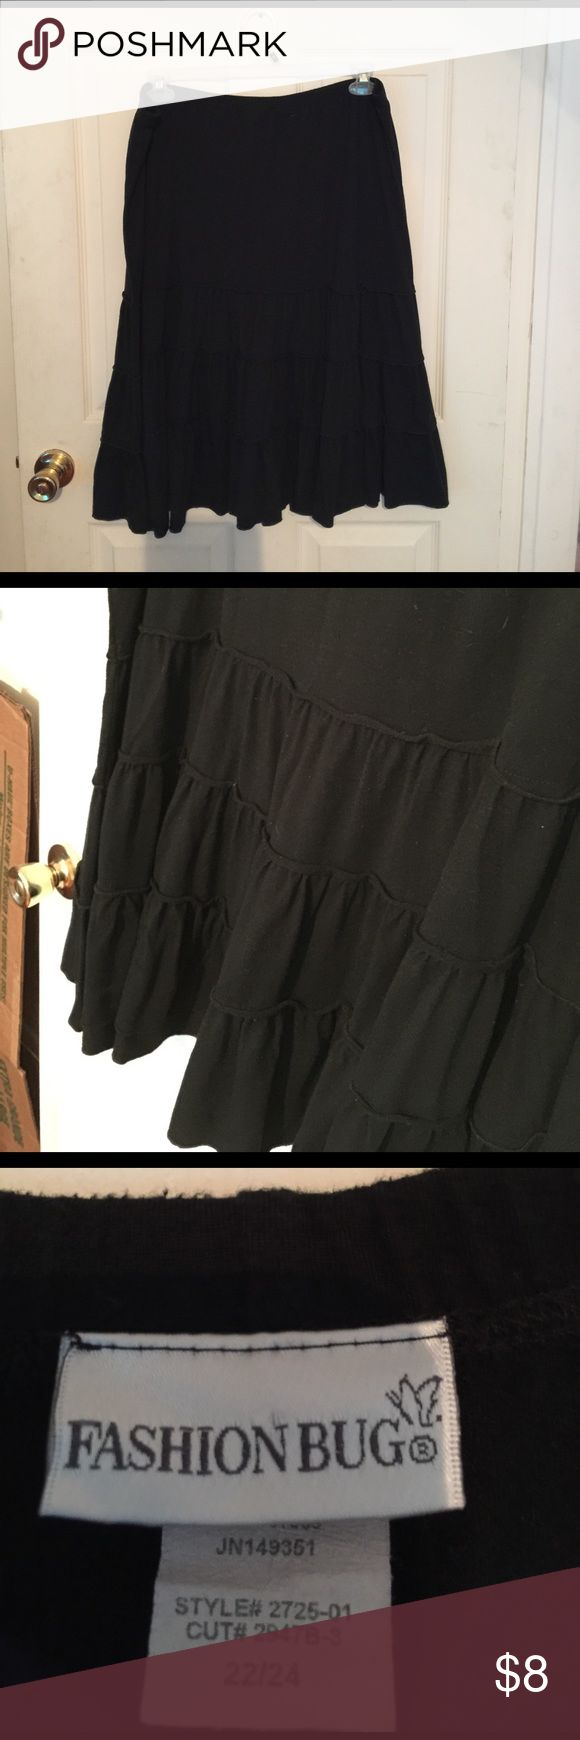 """Black cotton blend pull on skirt. Black pull on cotton blend skirt. Feels like a heavy t-shirt type material, very comfy. It measures 26"""" long and has 3 layered ruffled effect on bottom. Fashion Bug Skirts"""